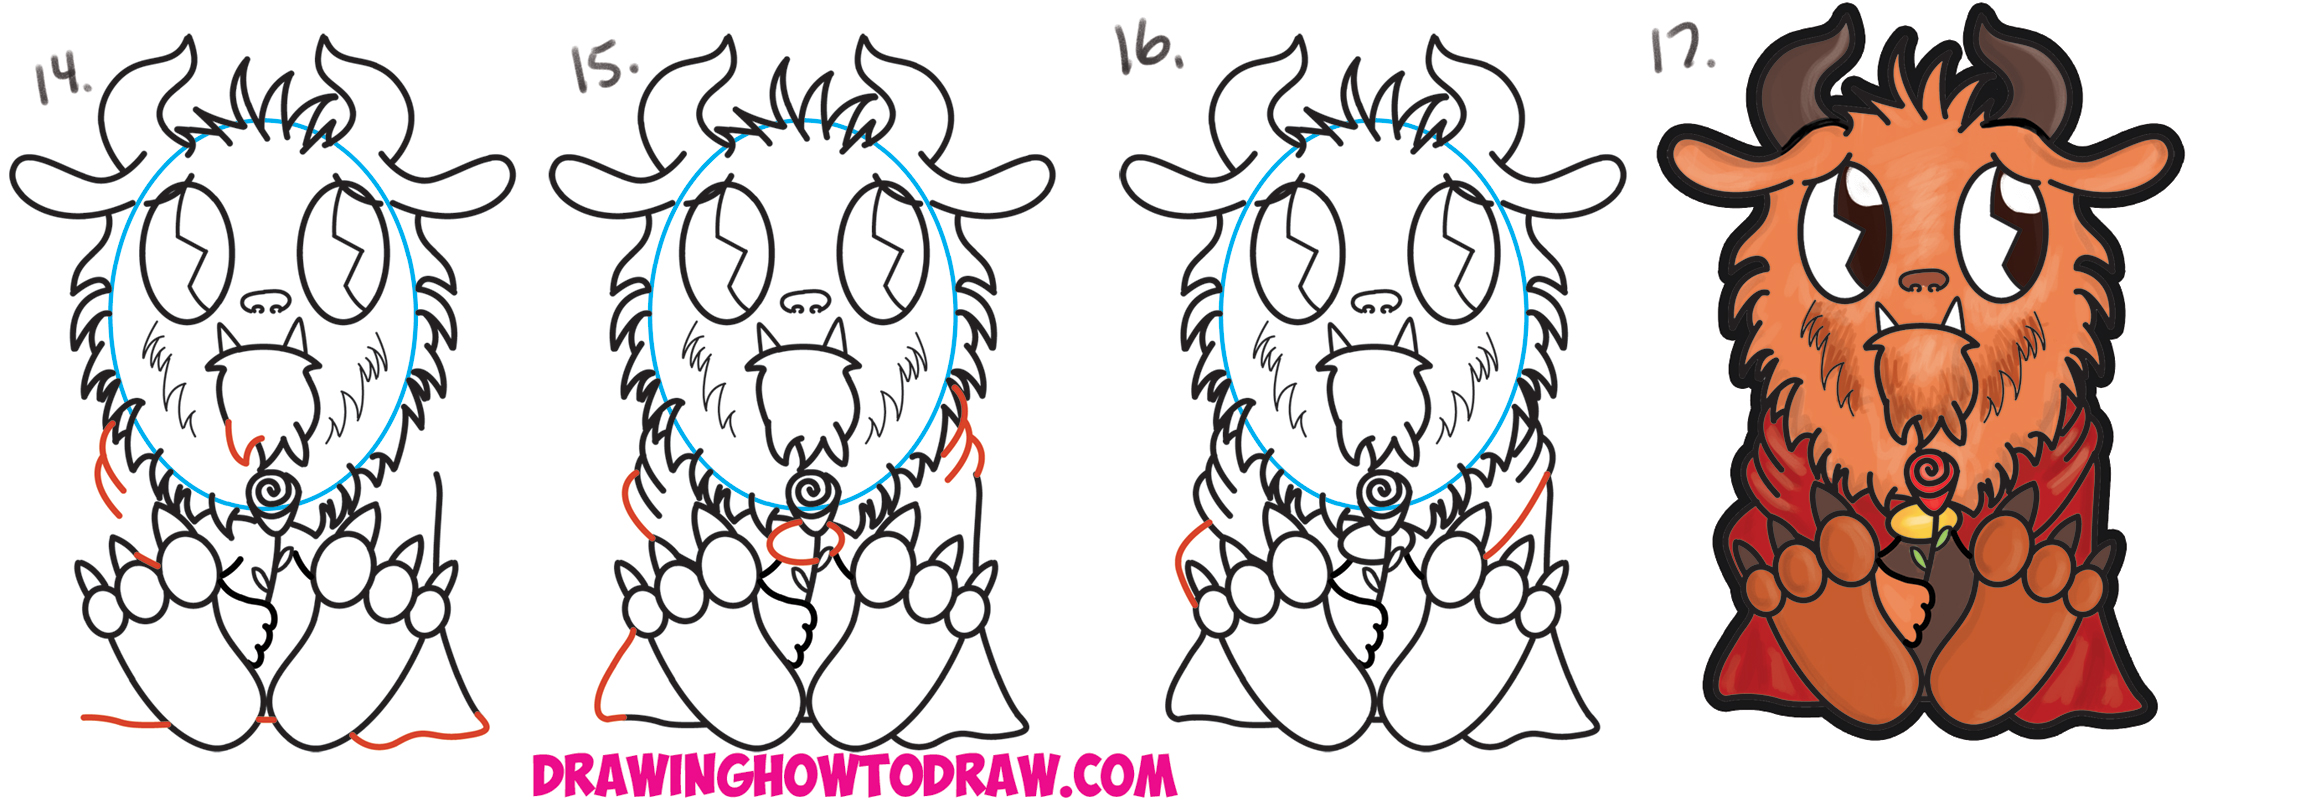 Learn How to Draw Cute Kawaii Chibi Beast from Beauty and the Beast Simple Step by Step Drawing Tutorial for Beginners